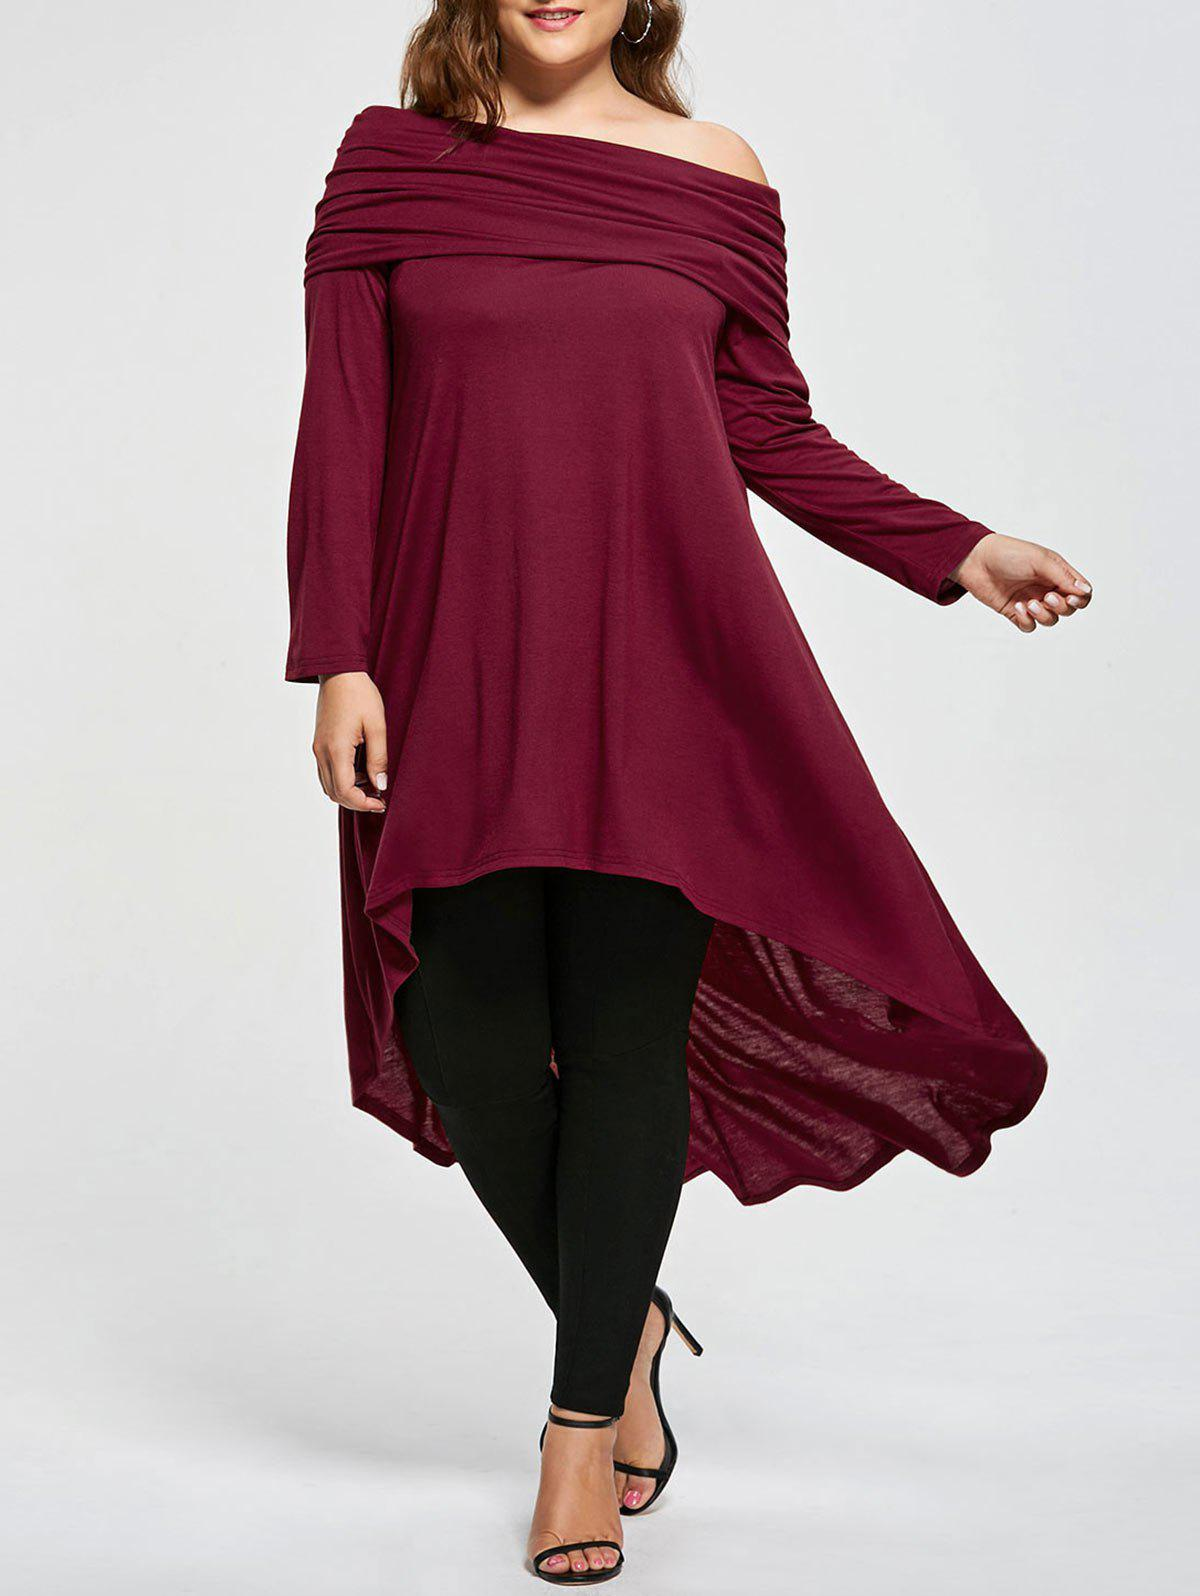 Plus Size Skew Neck Asymmetric Longline TopWOMEN<br><br>Size: 2XL; Color: WINE RED; Material: Cotton,Polyester; Shirt Length: Long; Sleeve Length: Full; Collar: Skew Collar; Style: Casual; Season: Fall,Spring; Pattern Type: Solid; Weight: 0.5000kg; Package Contents: 1 x T-shirt;